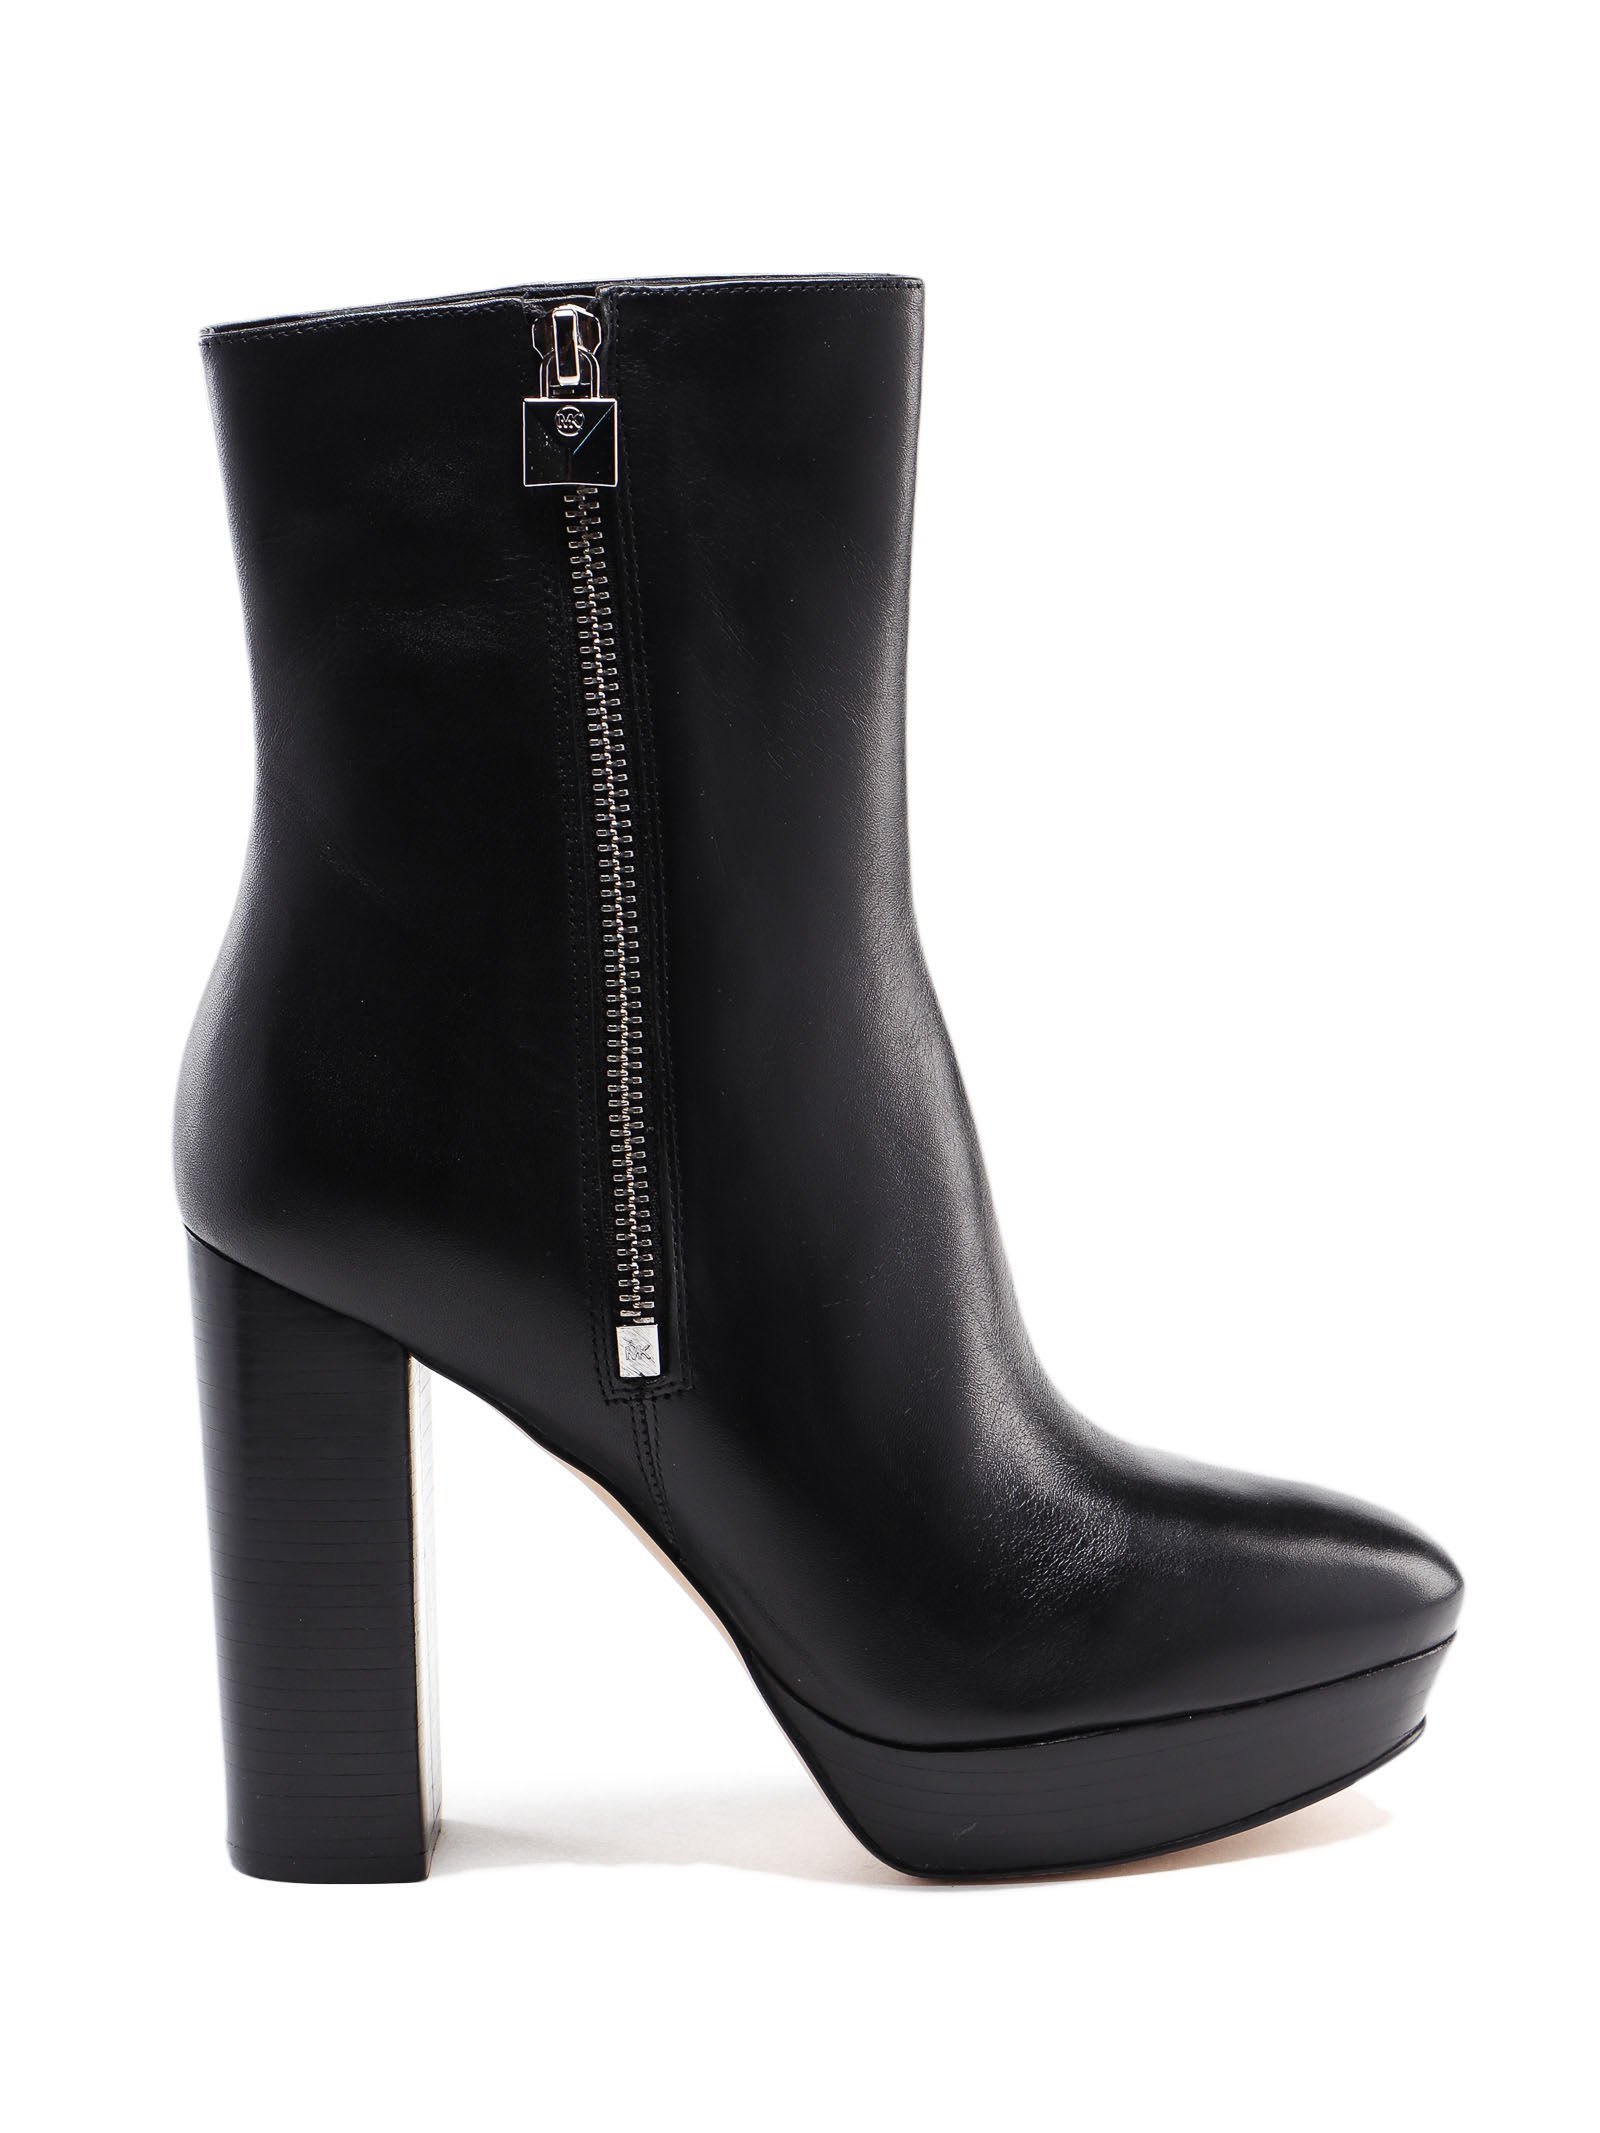 Michael Kors Frenchie Bootie